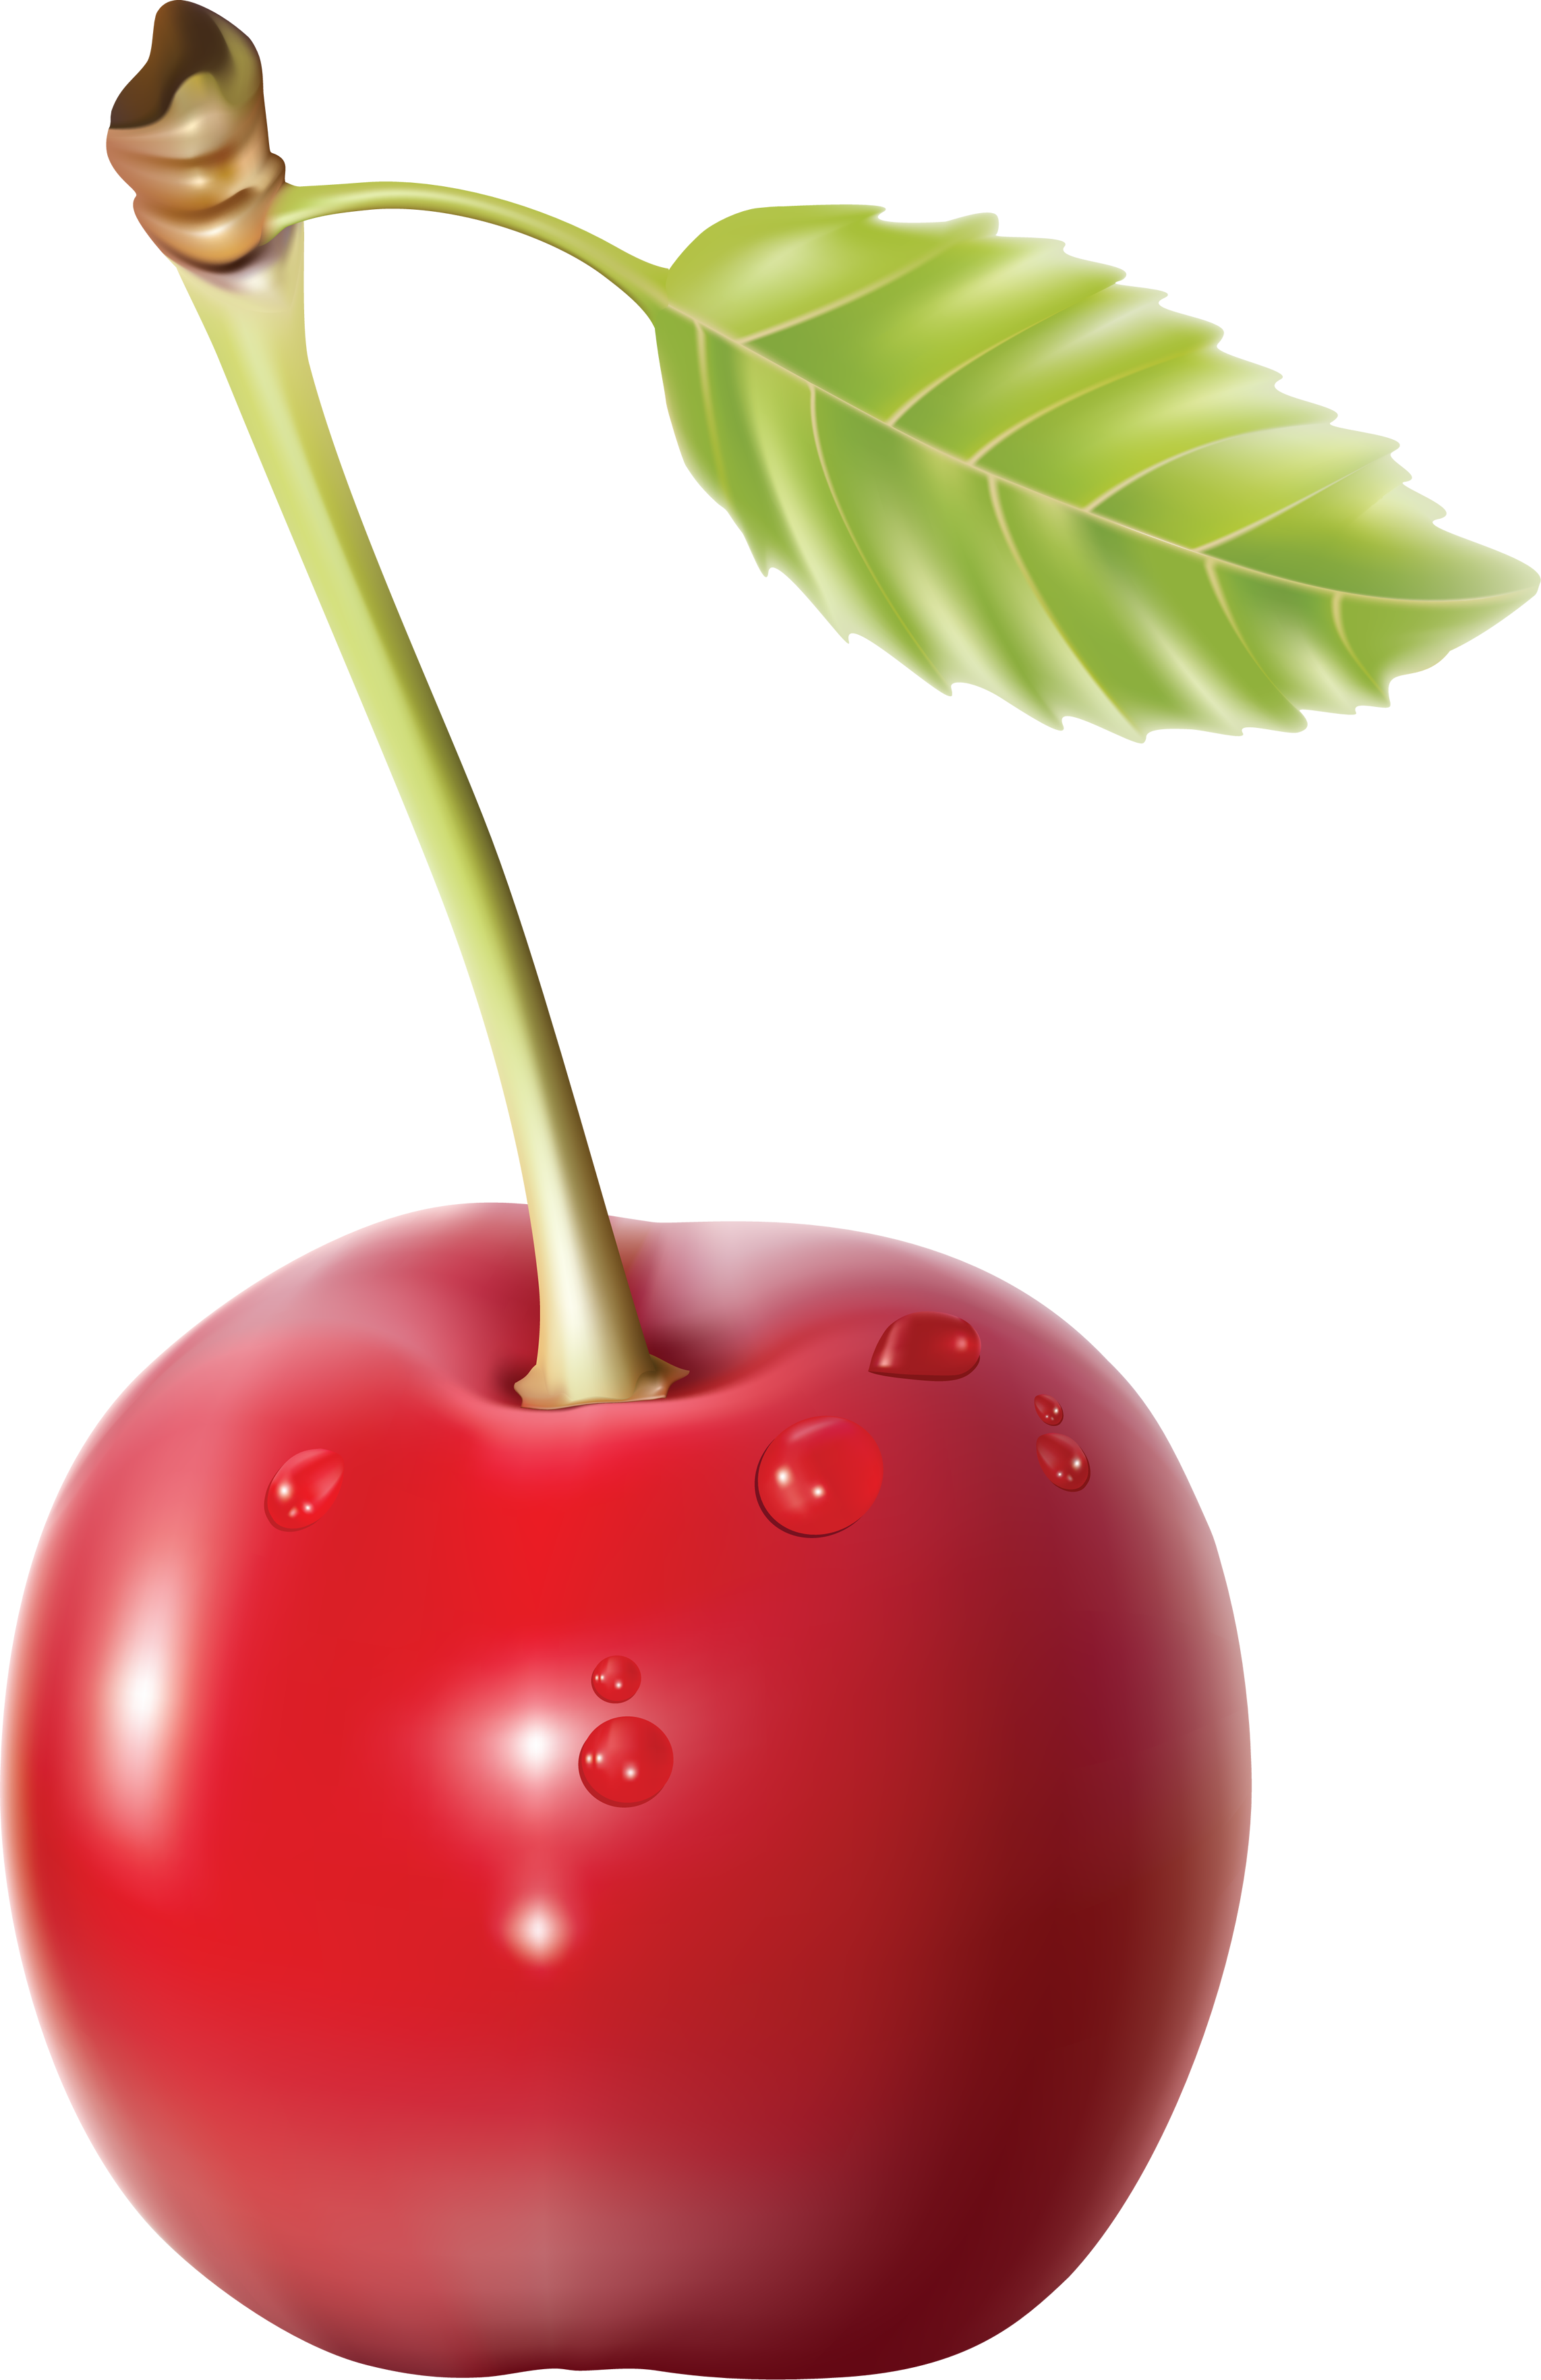 Grab and download Cherry Transparent PNG File